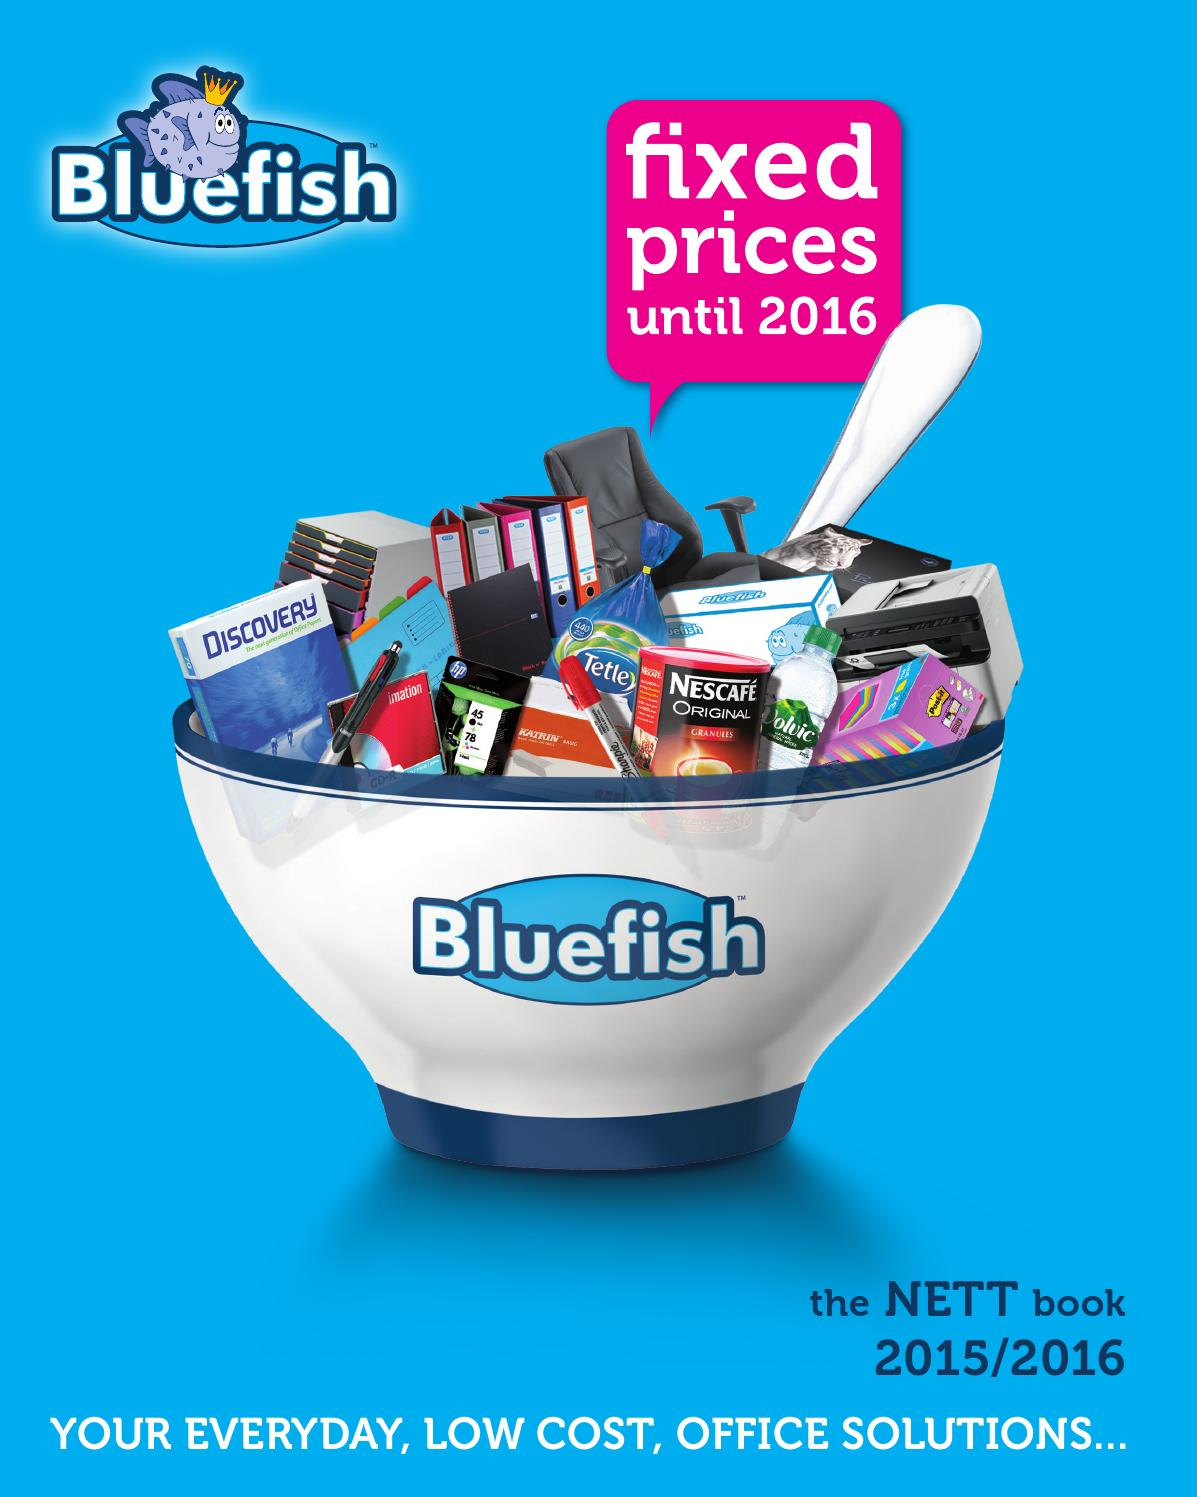 Bluefish Nett Book 2015 by Bluefish Office Products - issuu